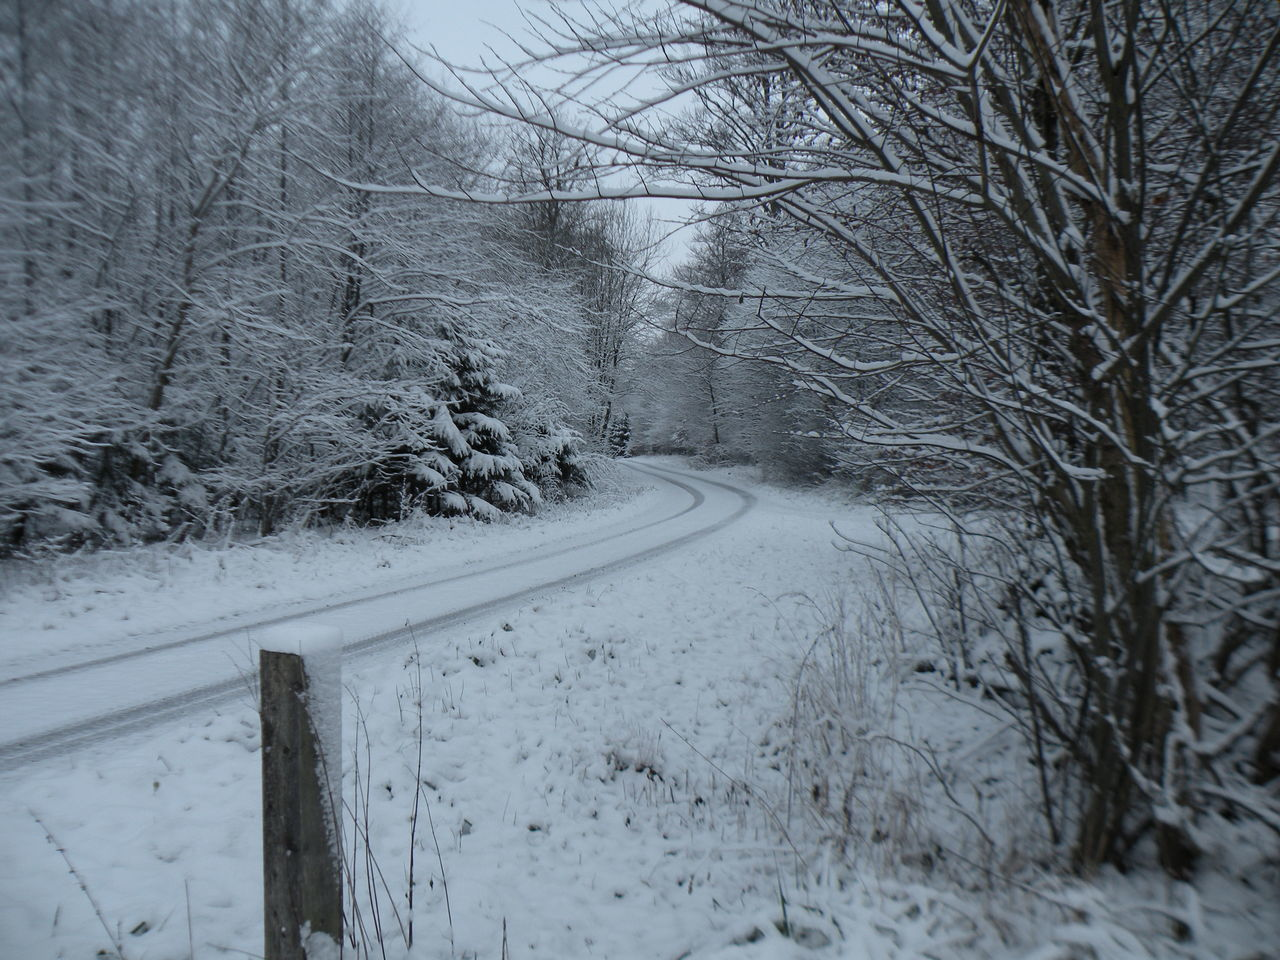 snow, winter, cold temperature, bare tree, weather, nature, no people, road, tranquility, day, tranquil scene, tree, outdoors, the way forward, beauty in nature, branch, scenics